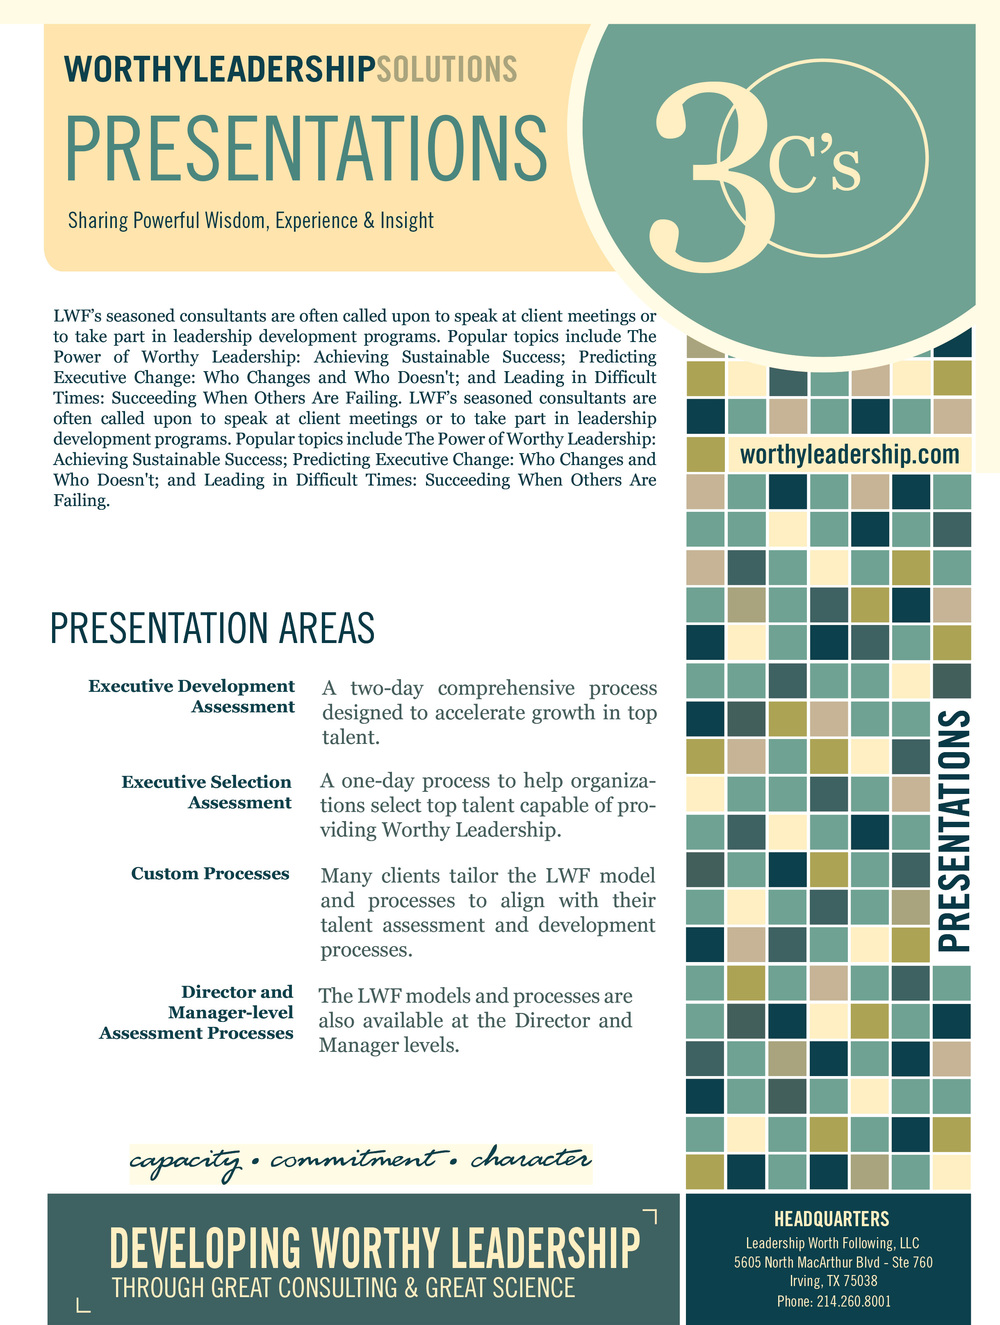 SolutionsFlyer6.jpg